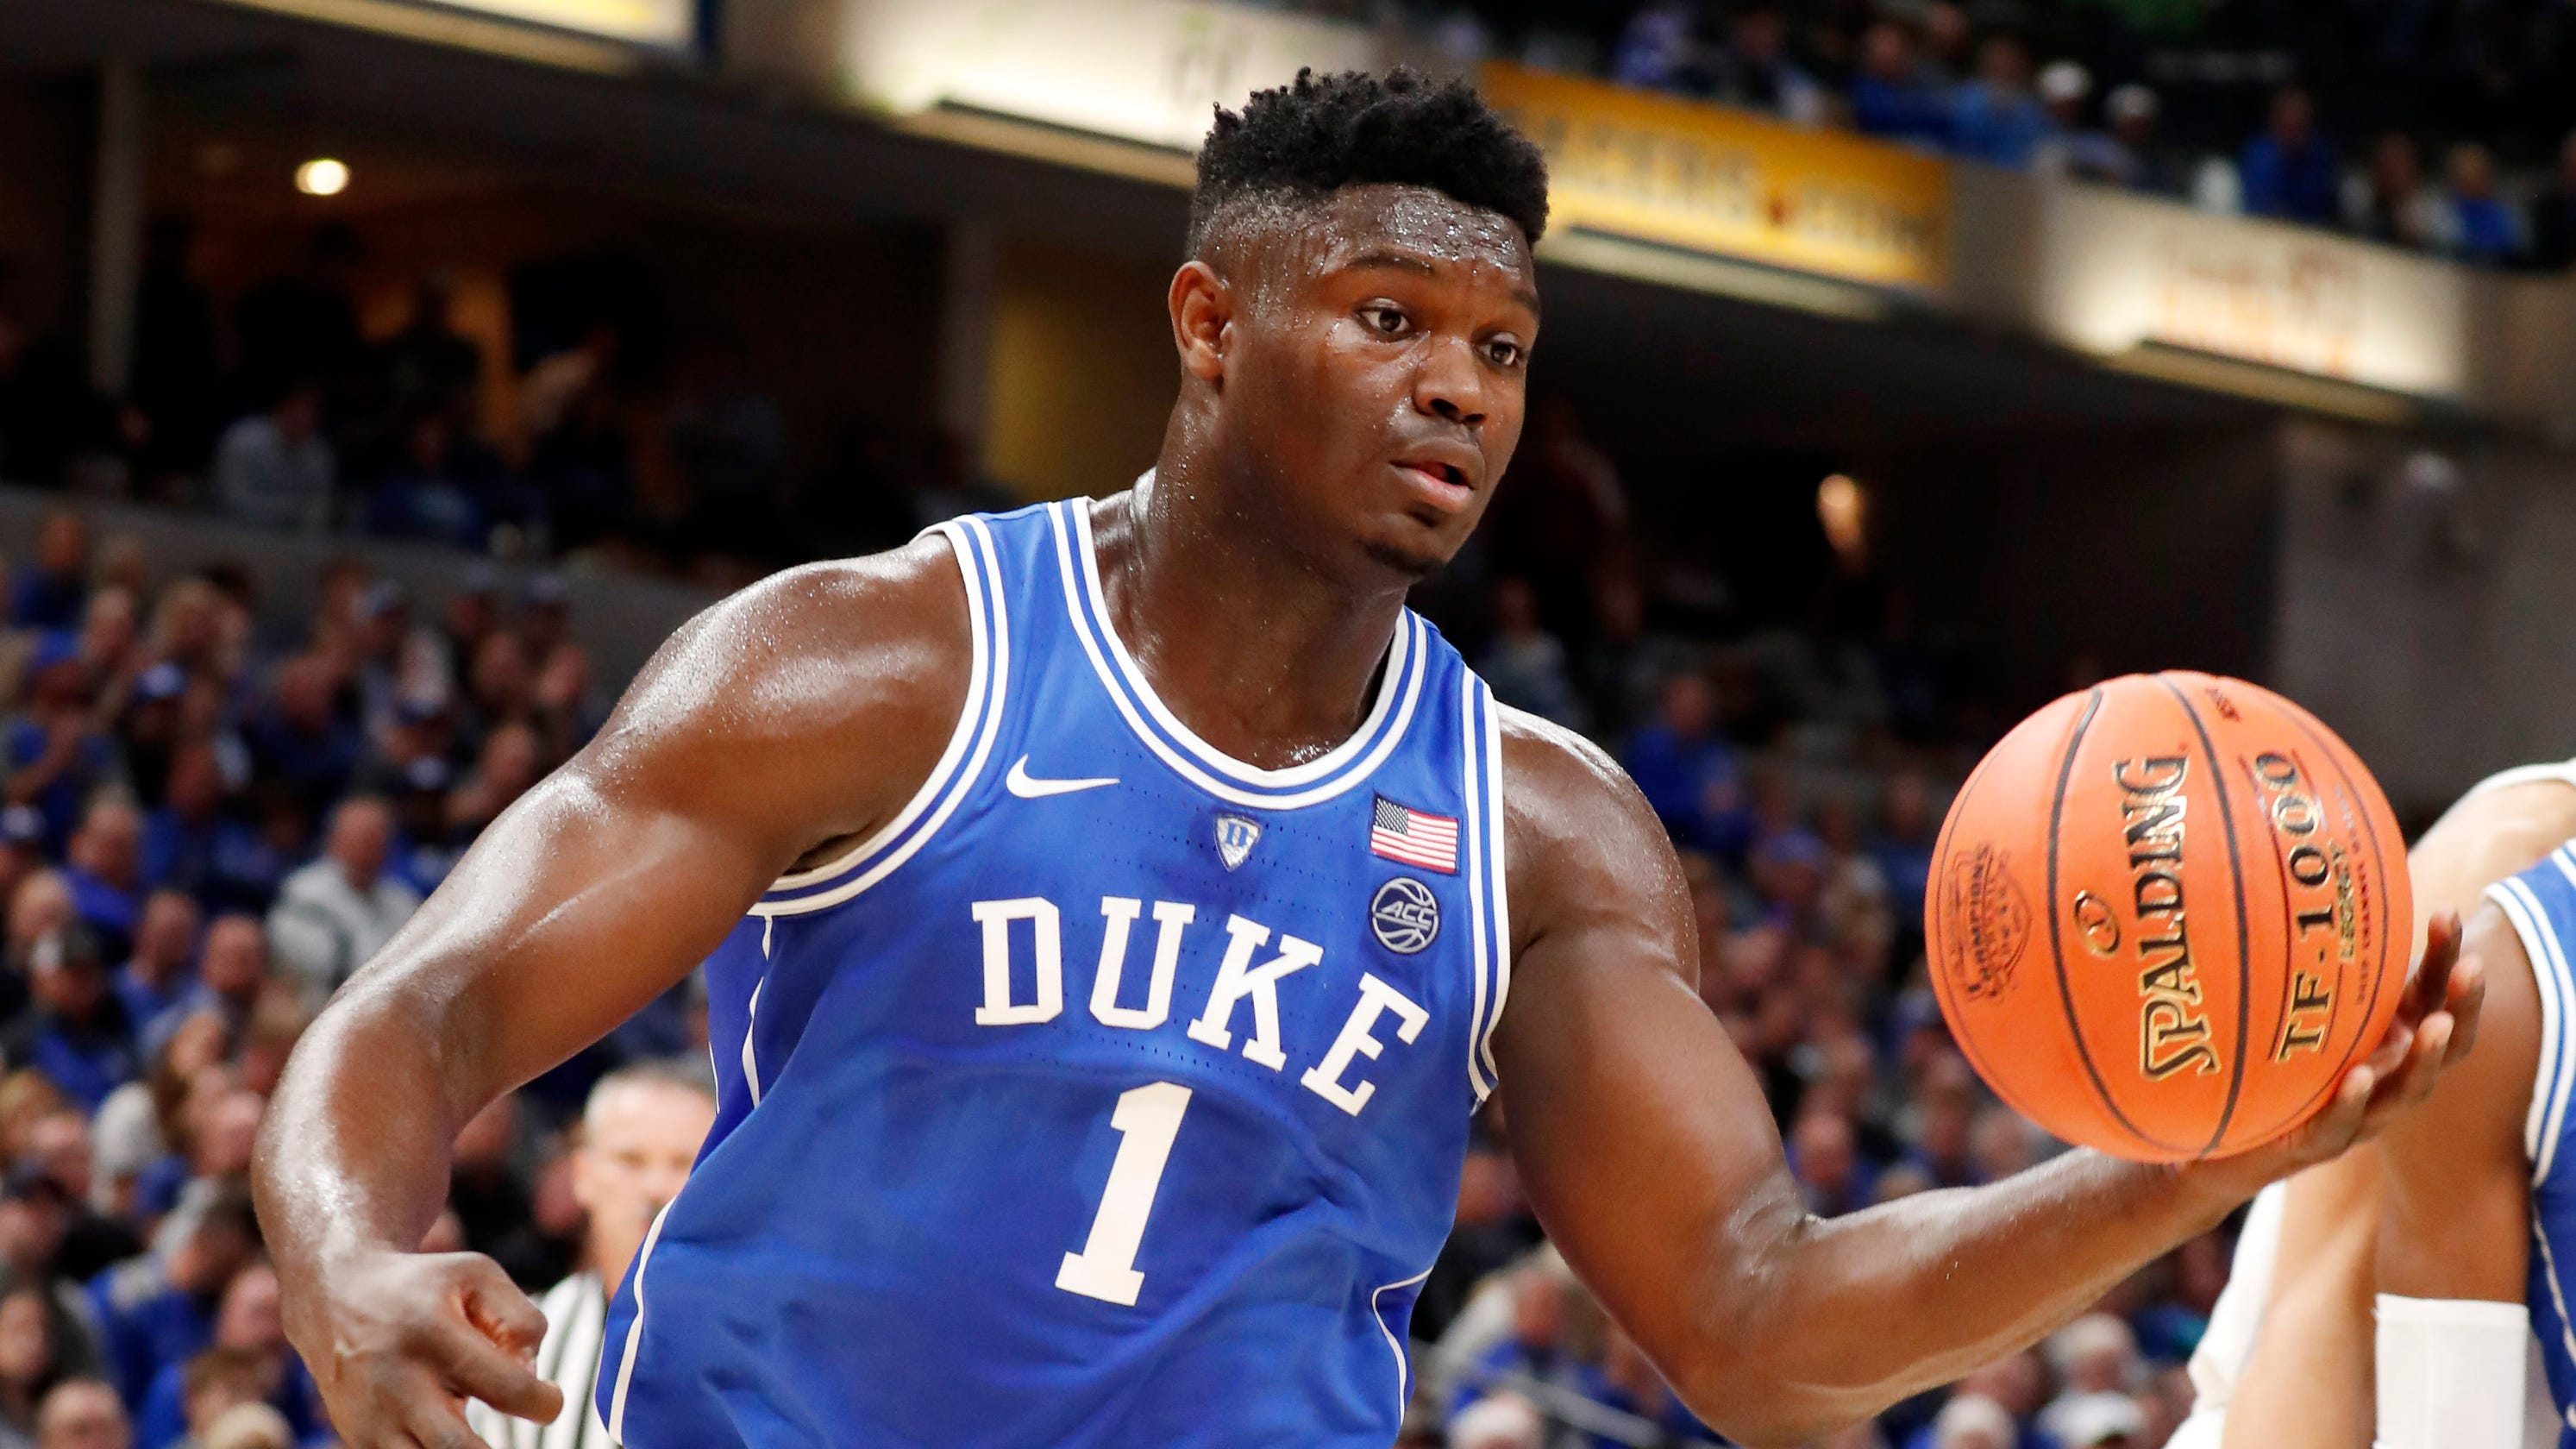 73f43365ab1 Duke s Zion Williamson produces highlight reel in blowout of Kentucky